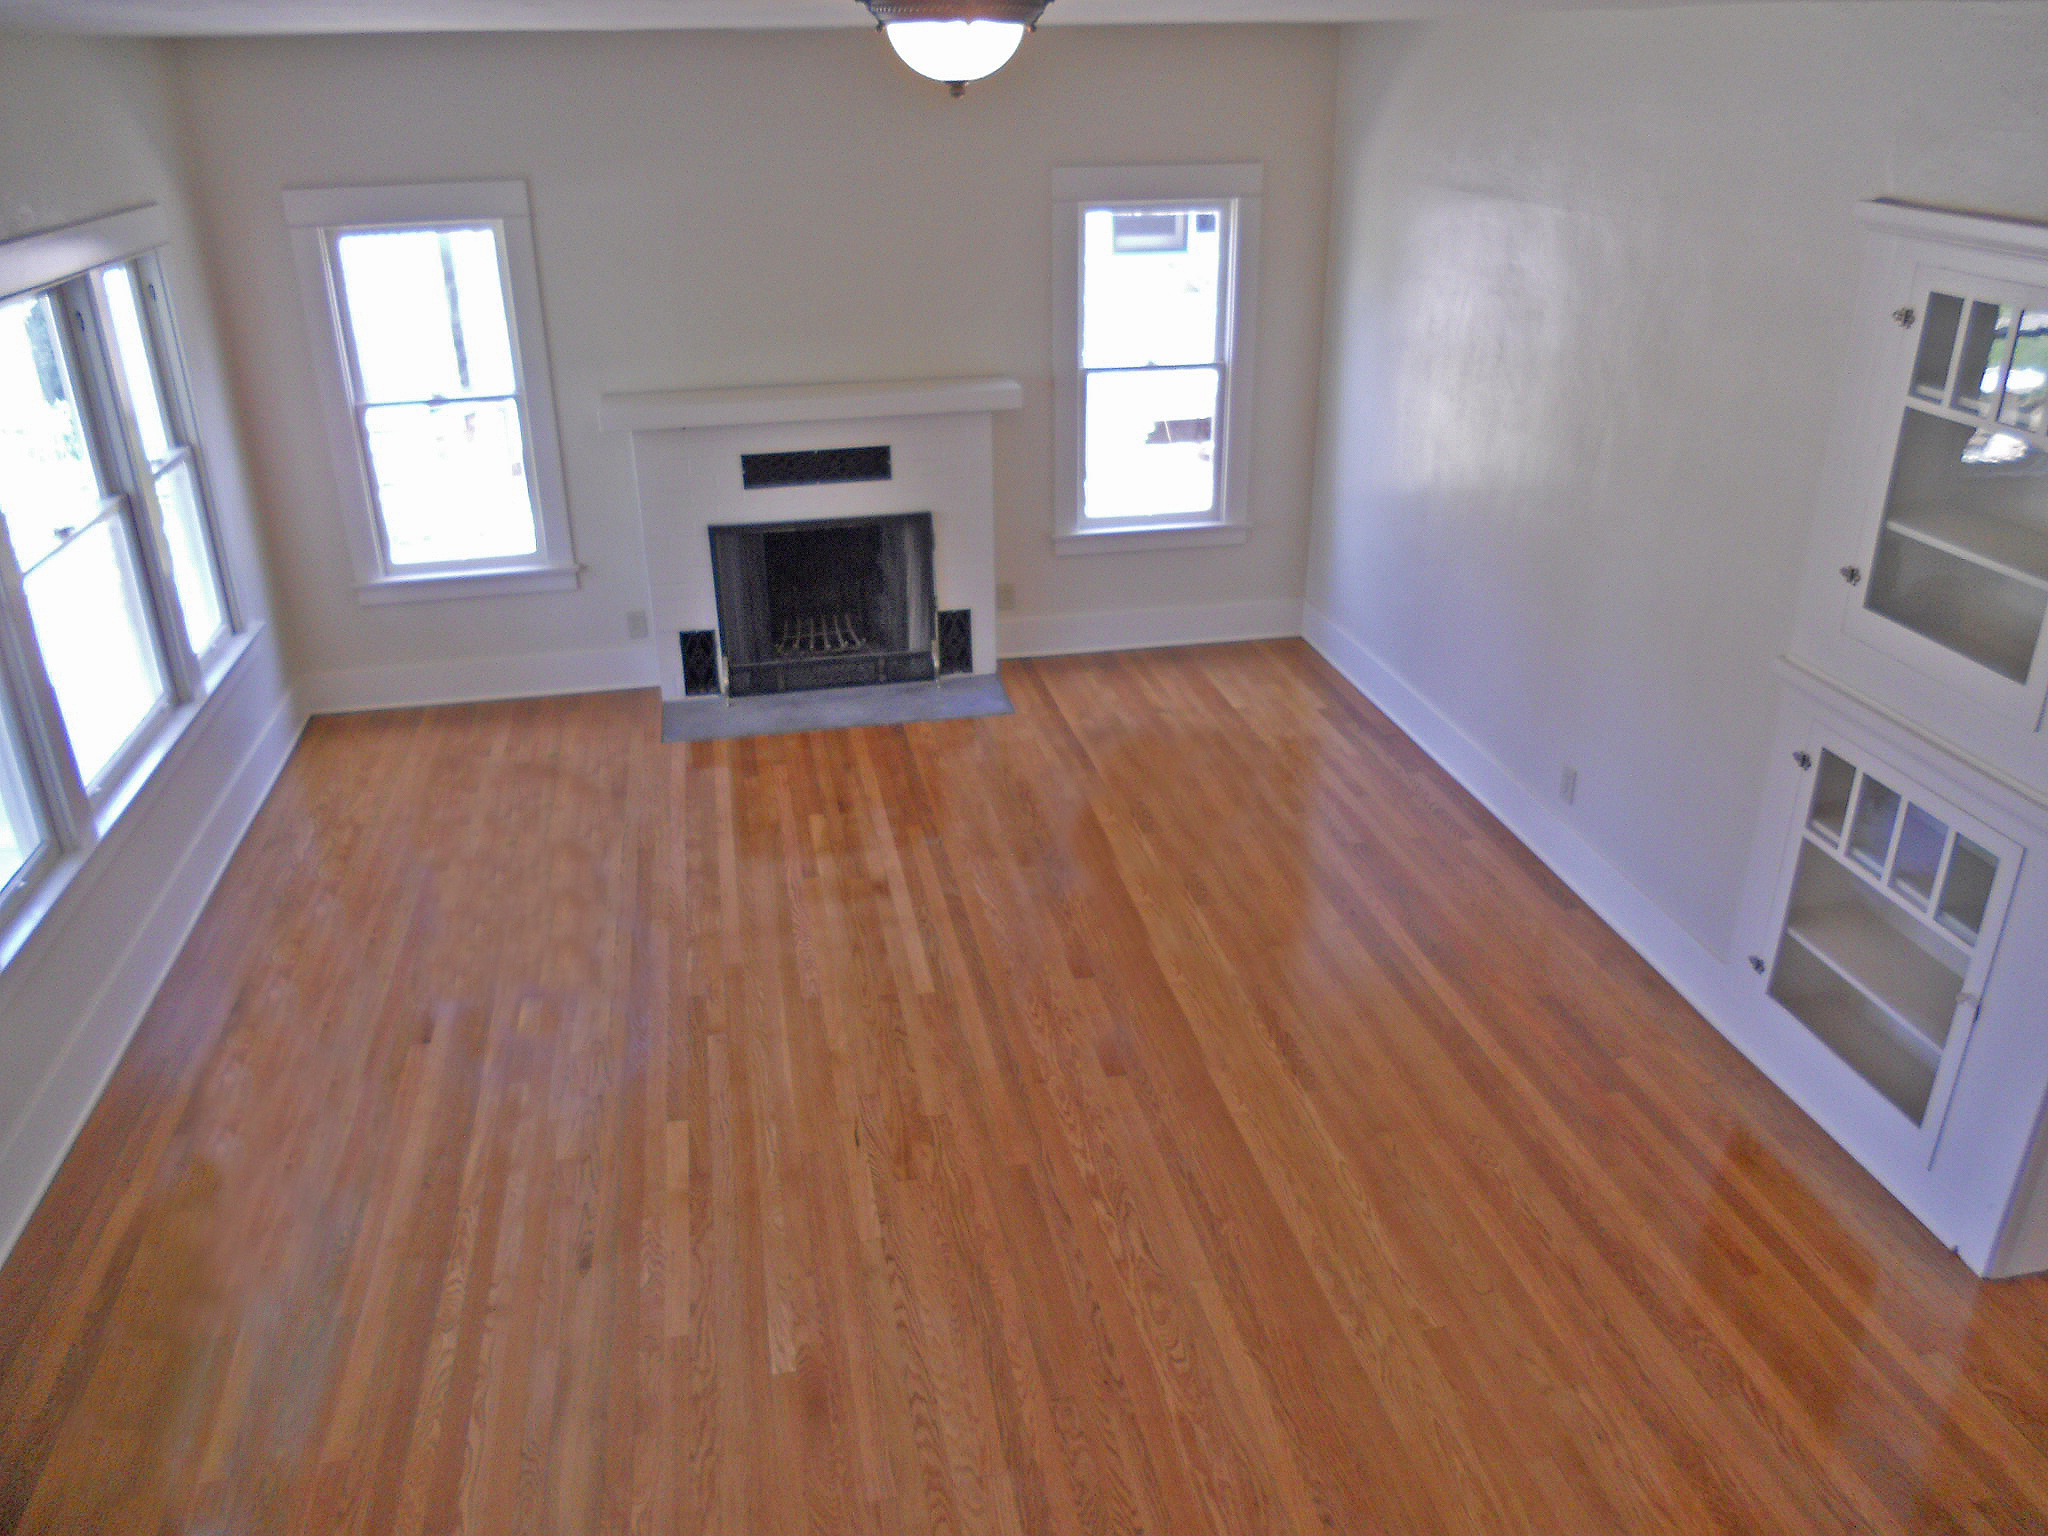 View of large living room with newly refinished original hardwood floors.